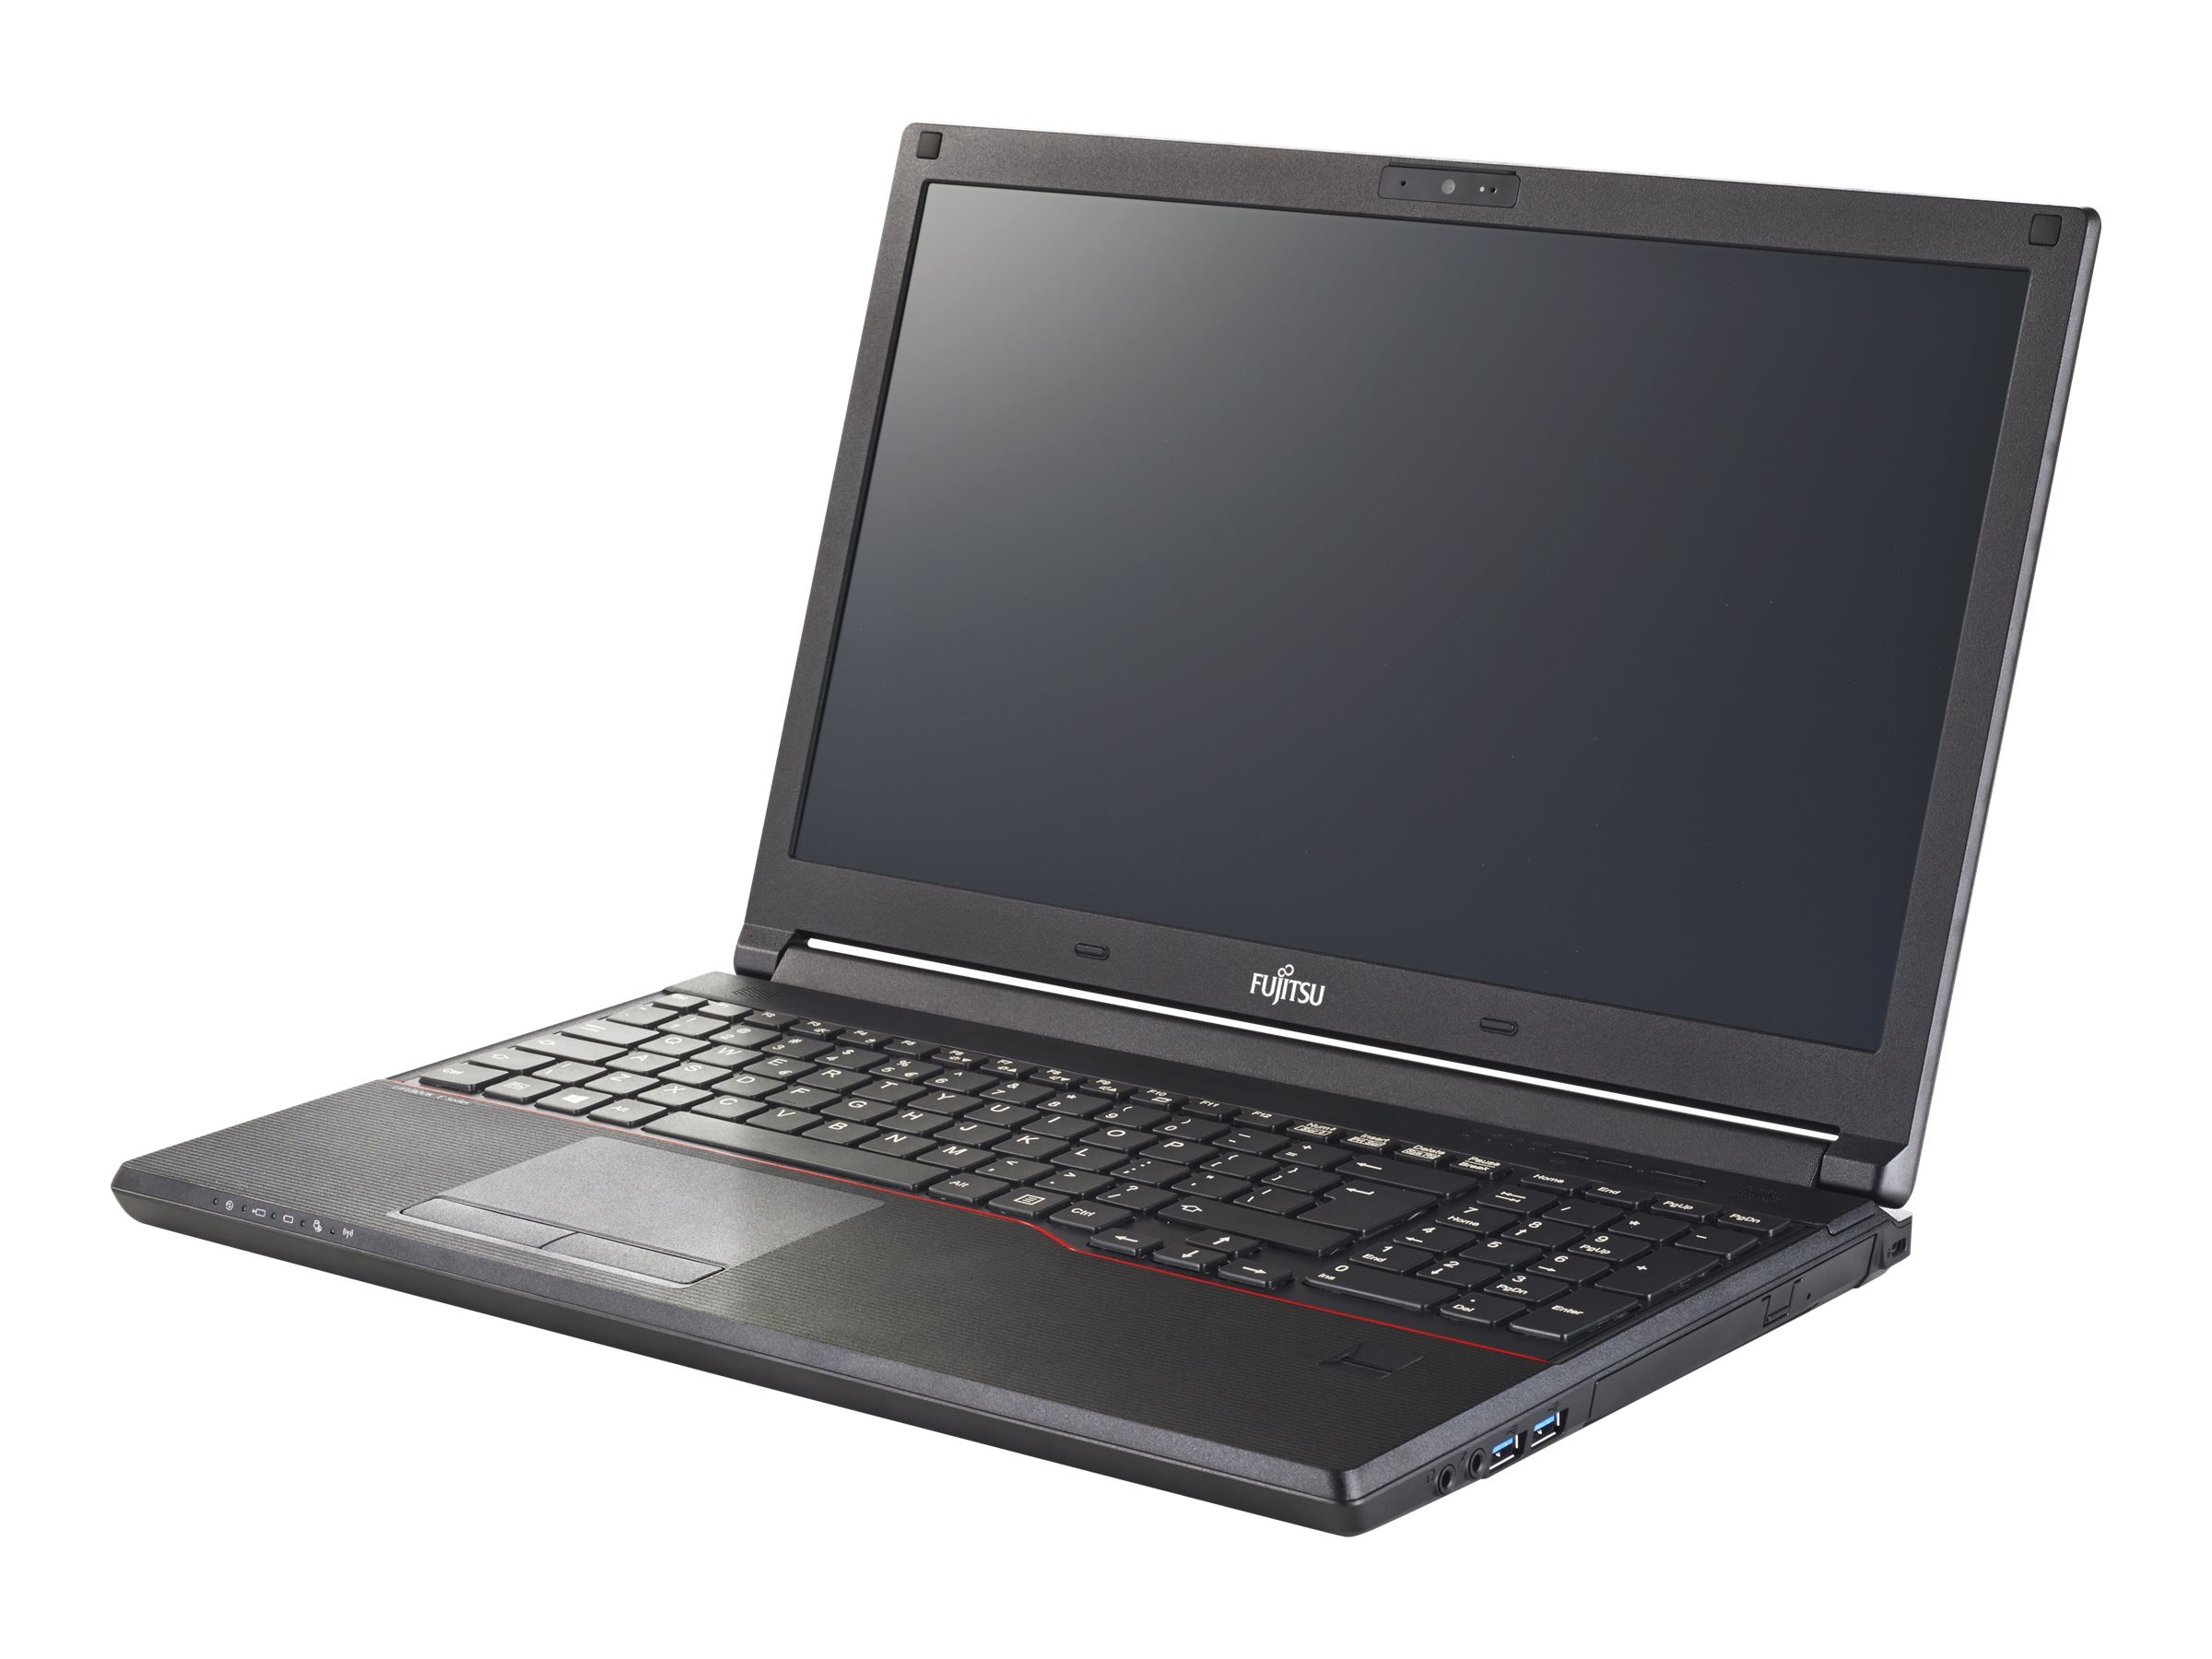 Fujitsu LifeBook E544 2.6GHz Core i5 14in display, SPFC-E544-003, 28188412, Notebooks